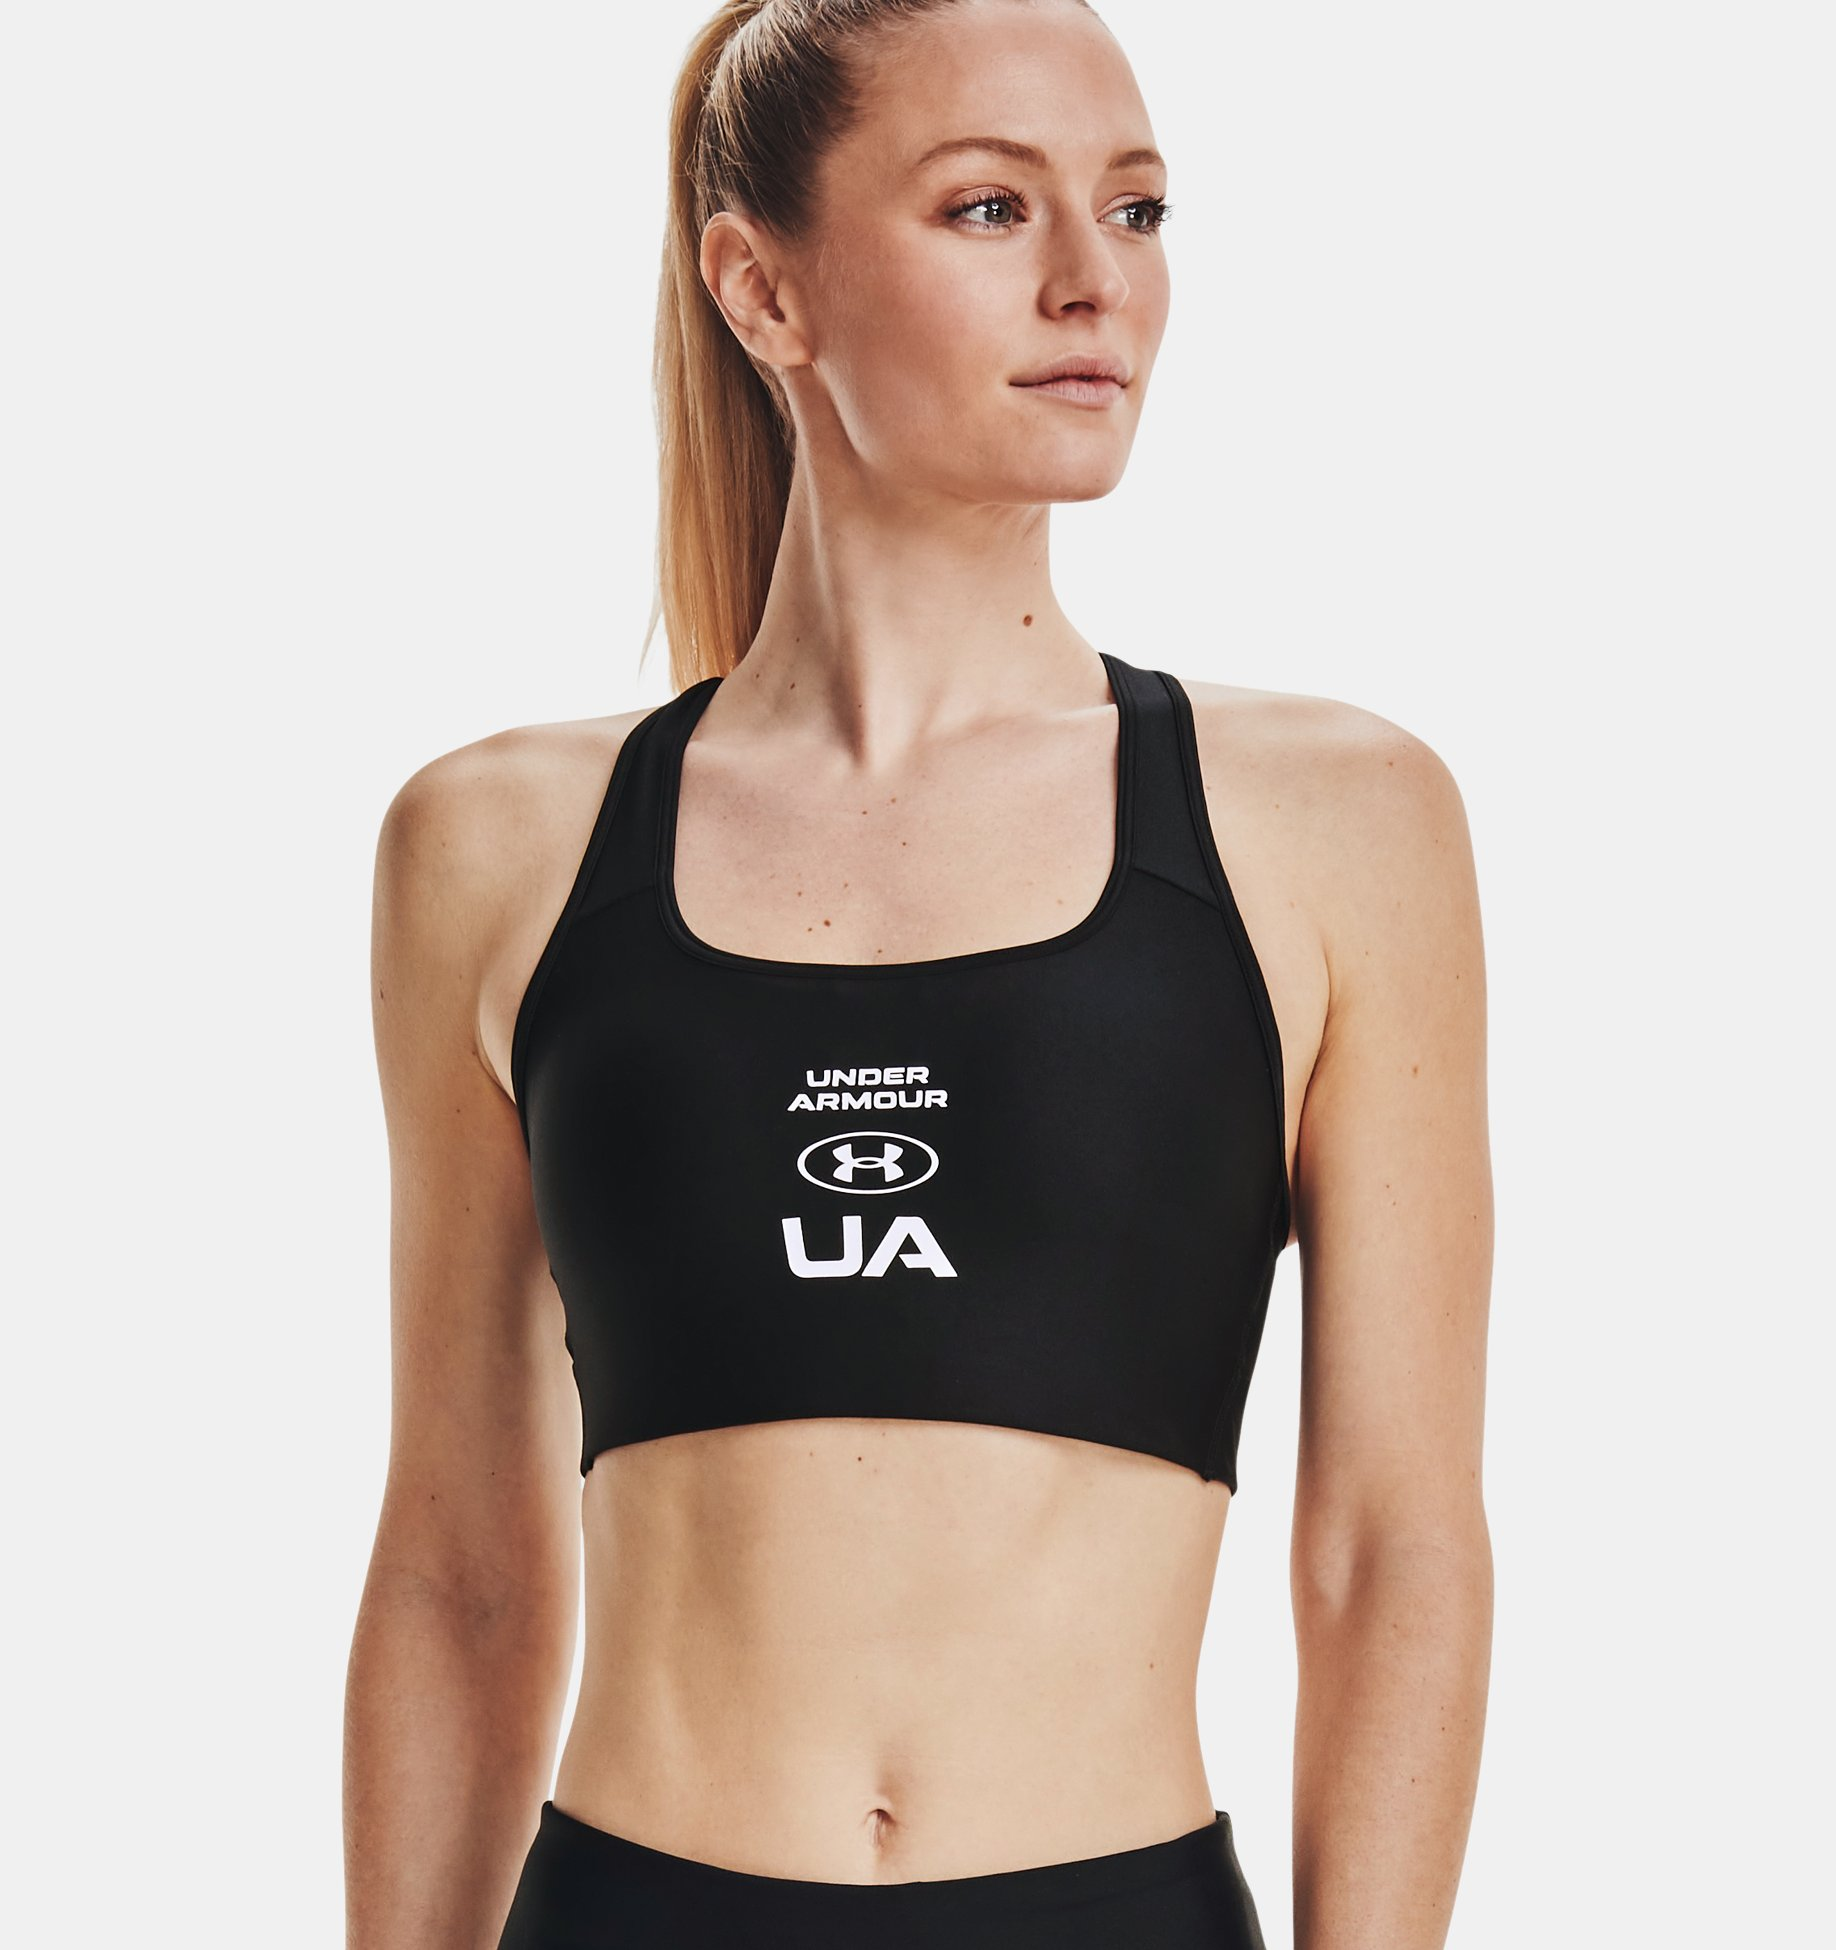 Underarmour Womens Armour Mid Crossback Graphic Sports Bra